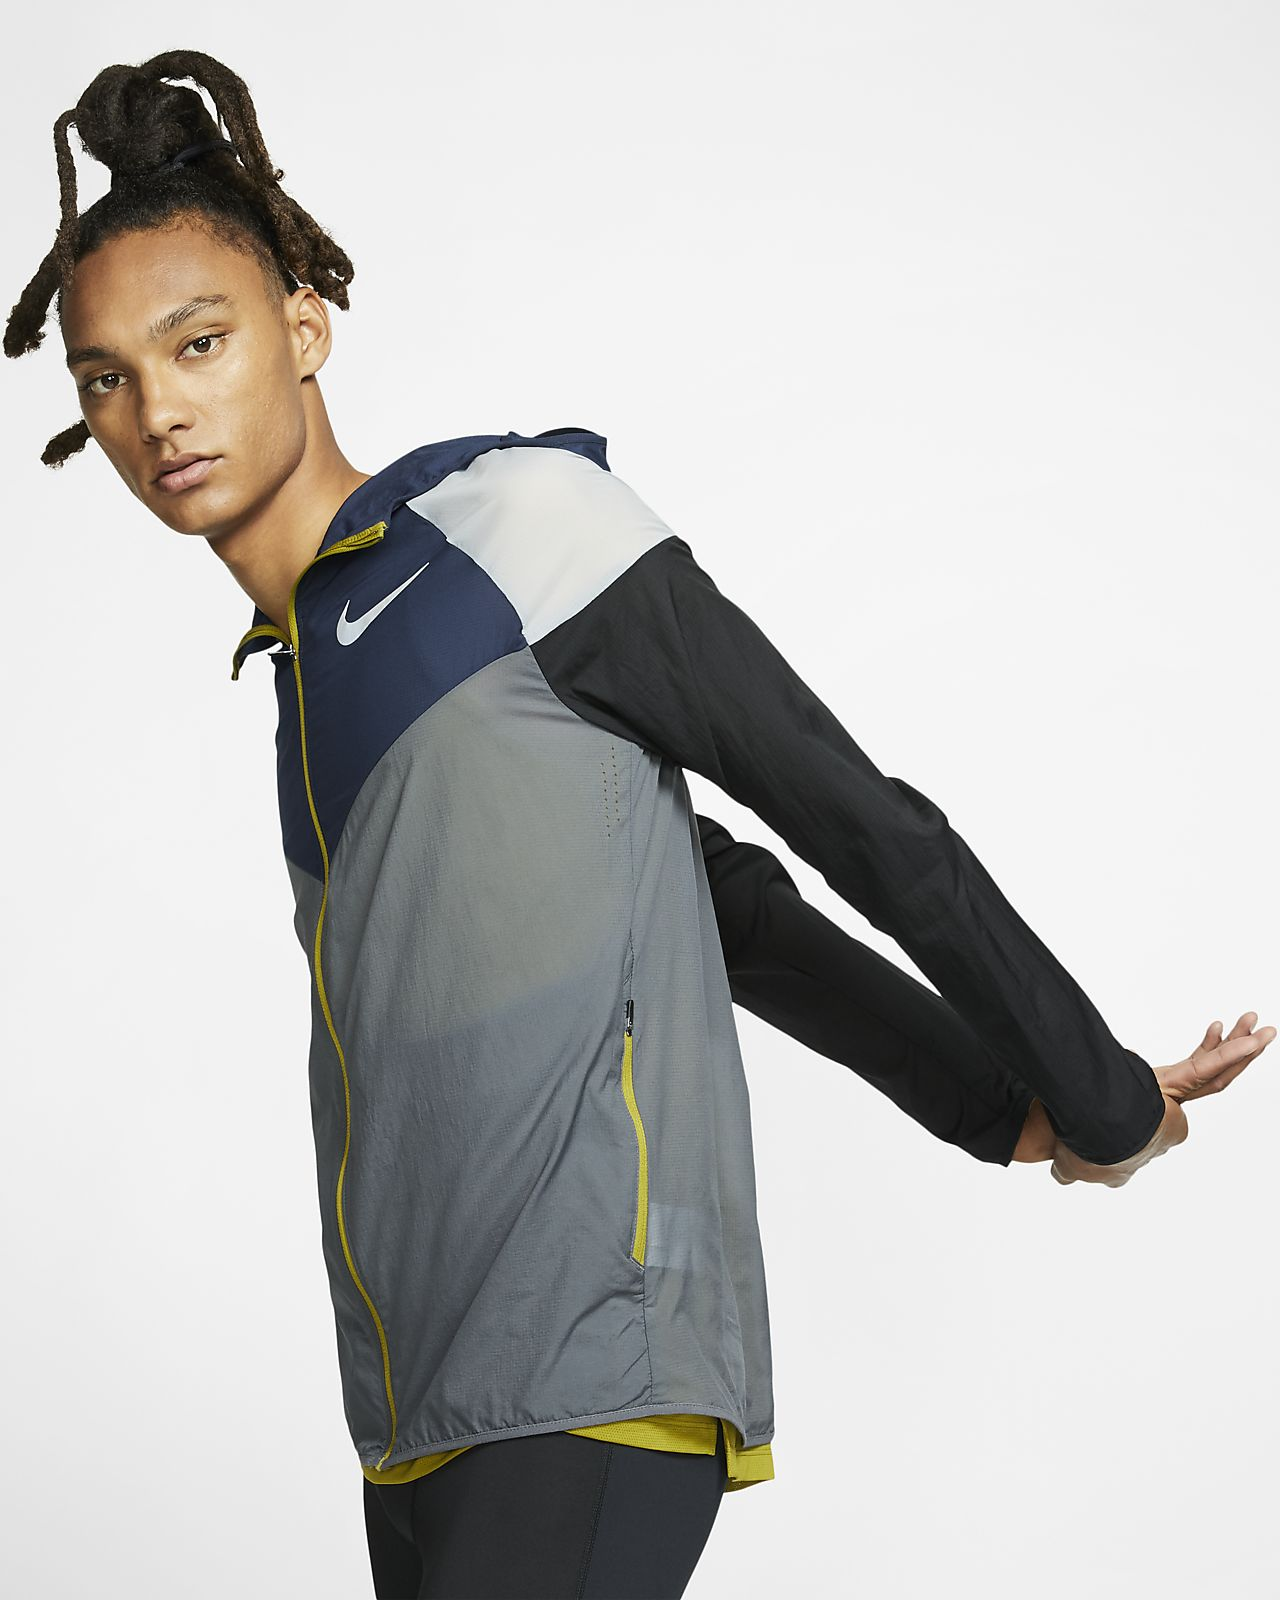 80a941f52 Nike Windrunner Men's Running Jacket. Nike.com ID